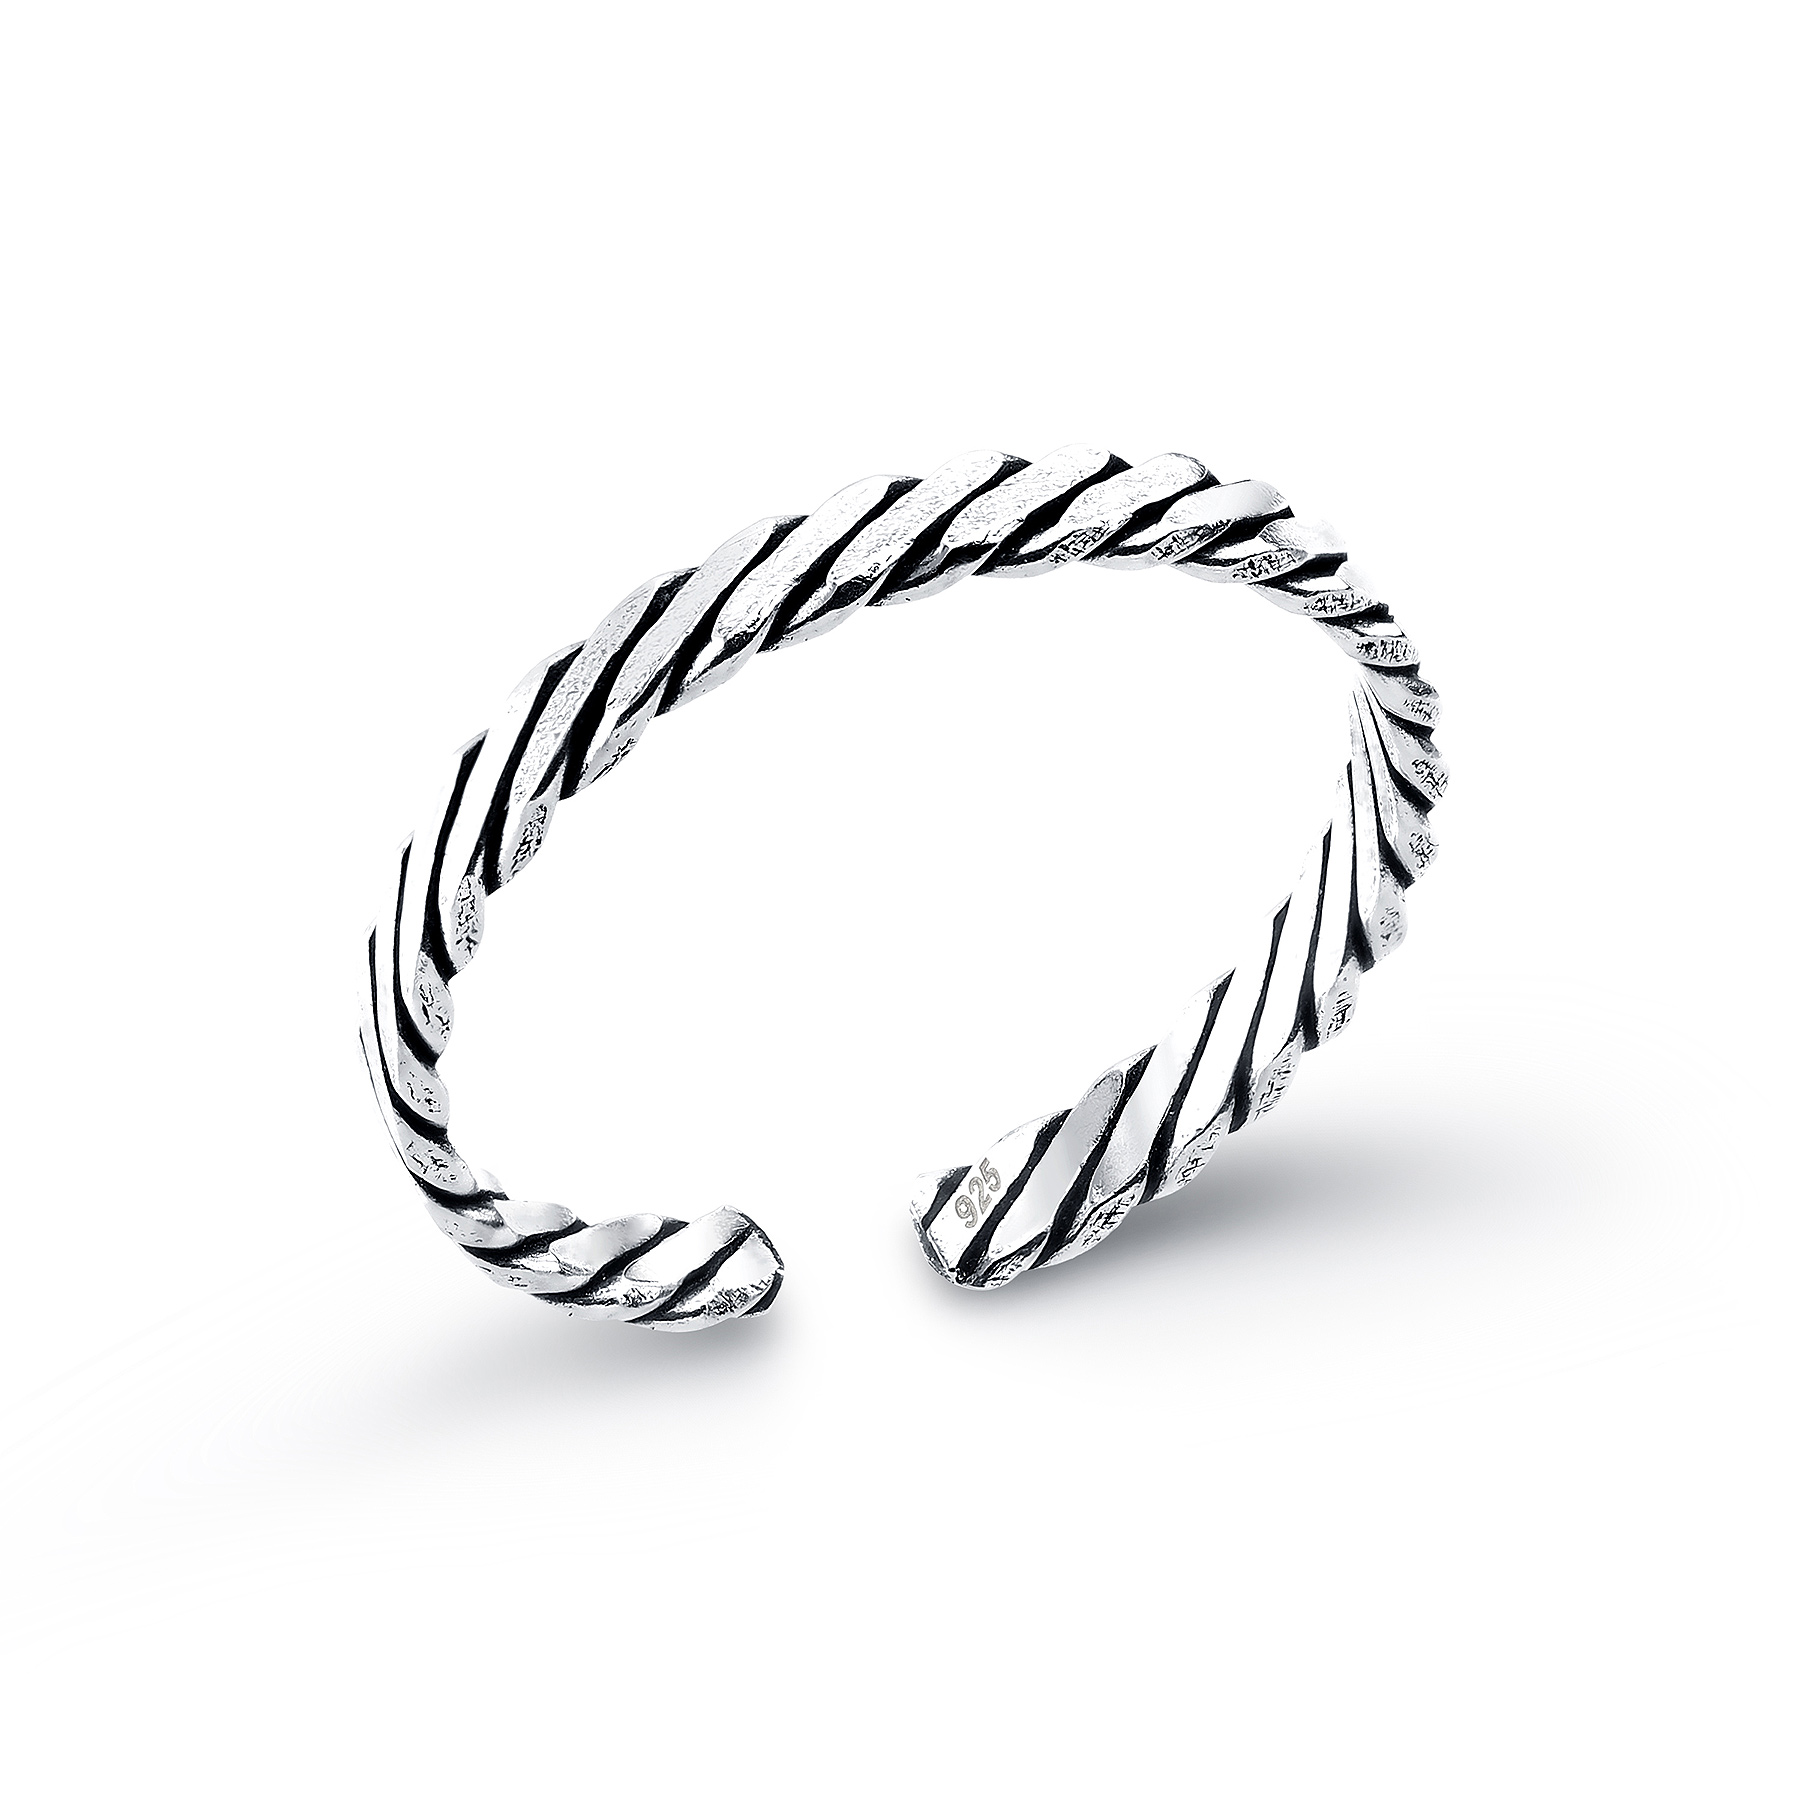 792-906 - 925 Sterling Silver Oxidized Toe Ring